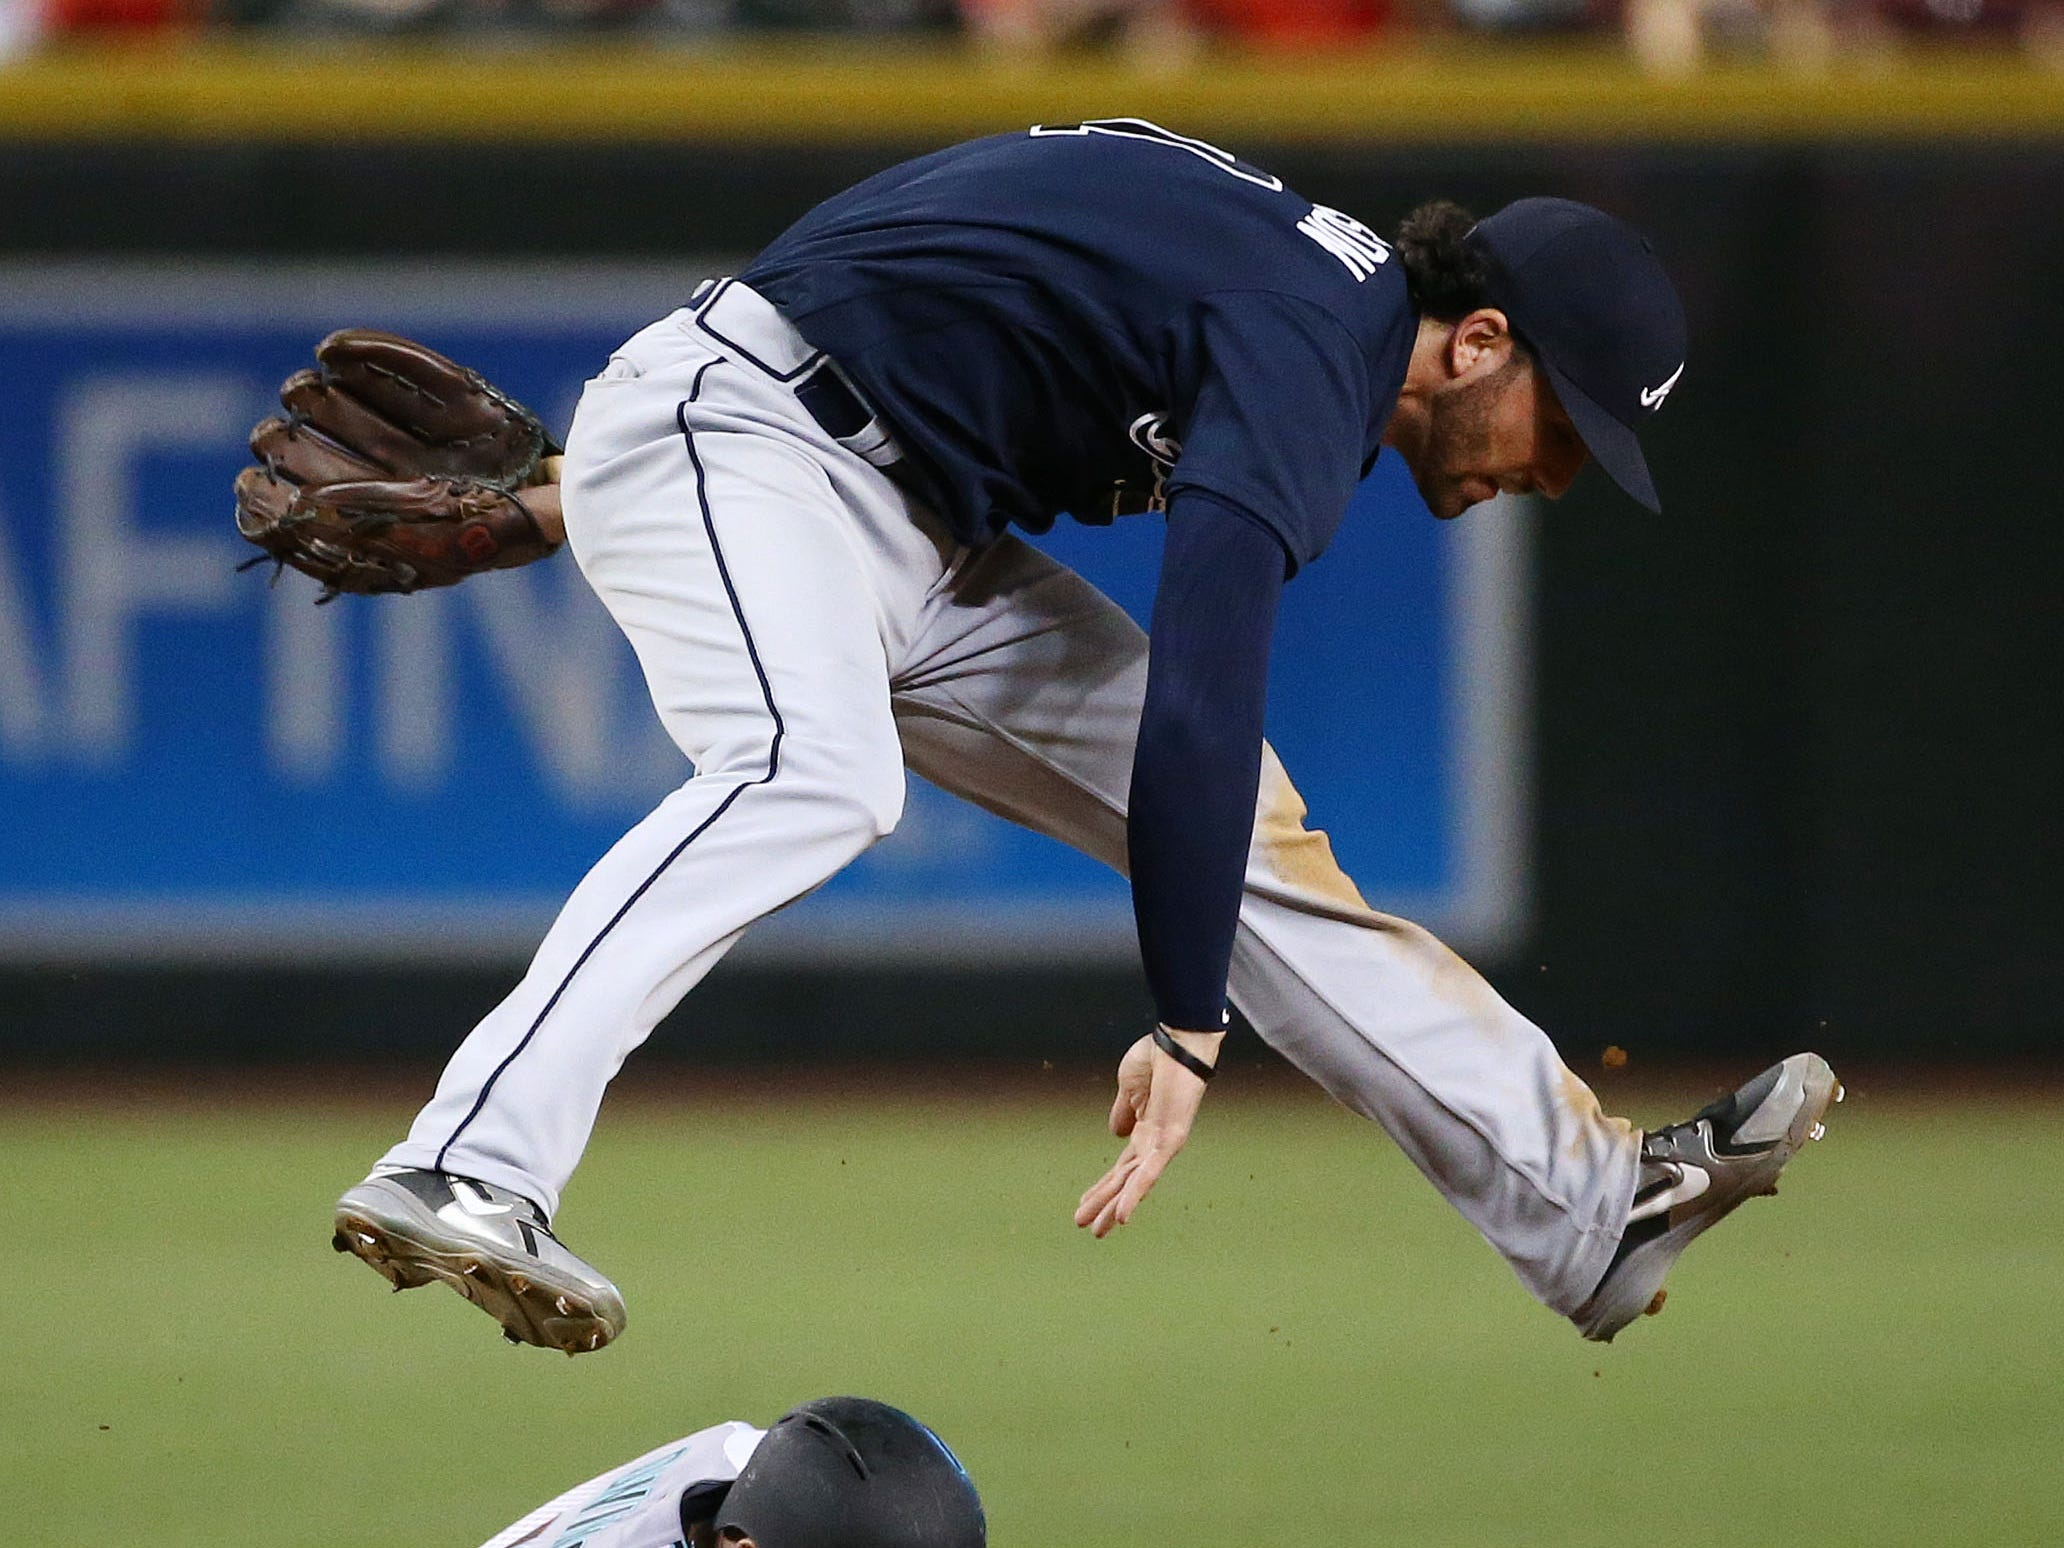 Arizona Diamondbacks Chris Owings slides into second base as Atlanta Braves Dansby Swanson turns the double play to end the seventh inning on Sep. 6, 2018, at Chase Field in Phoenix, Ariz.